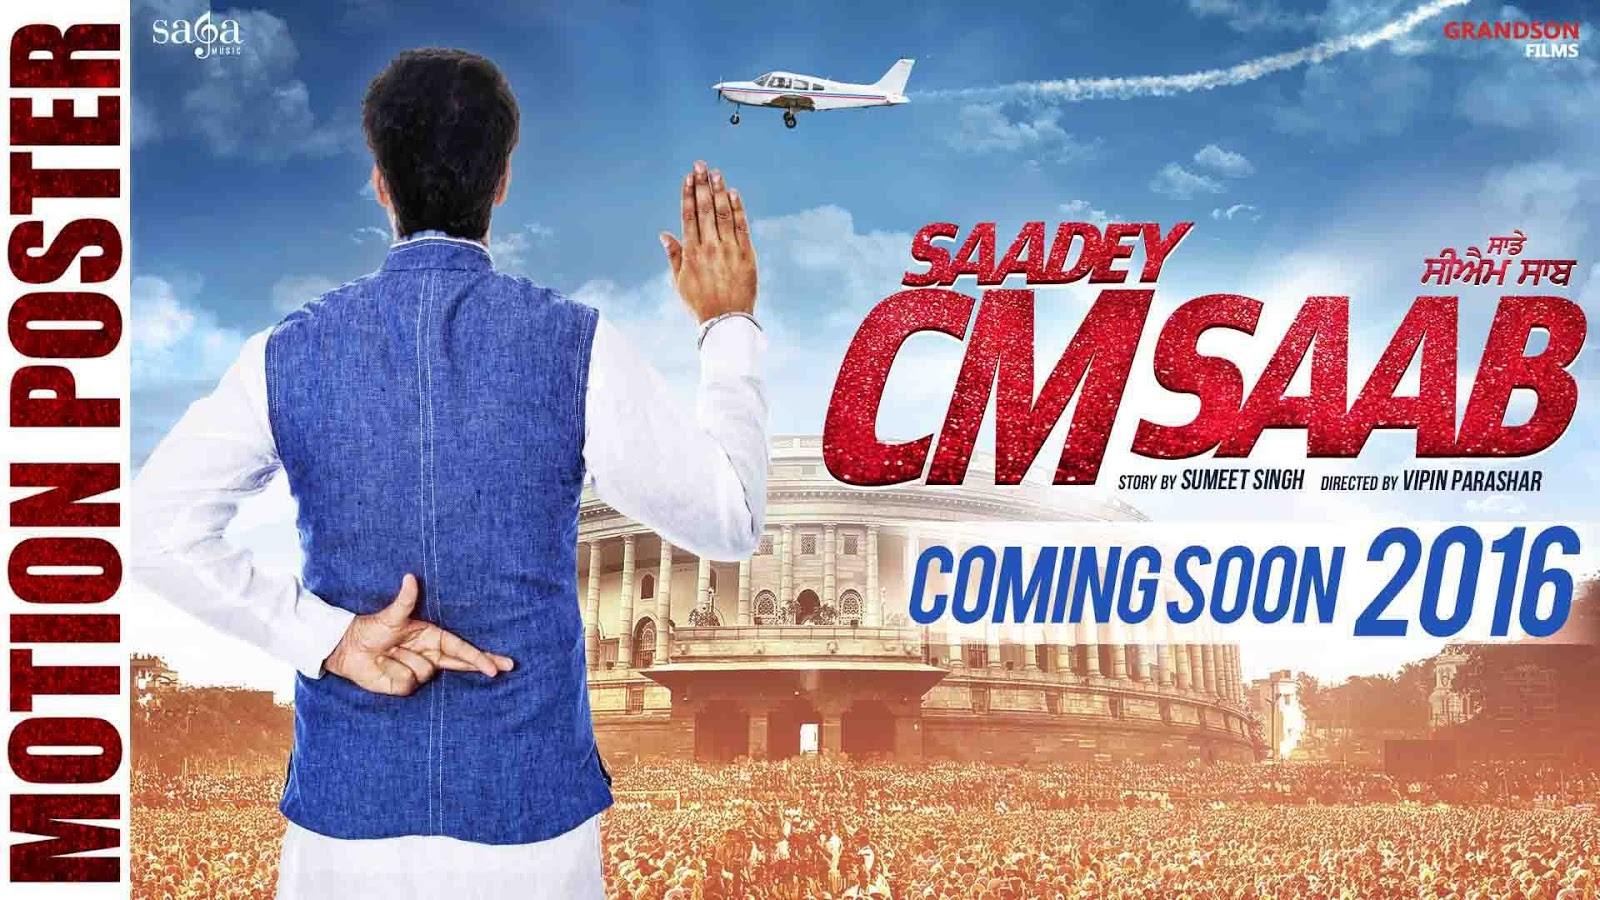 Complete cast and crew of Saadey CM Saab (2016) bollywood hindi movie wiki, poster, Trailer, music list - Harbhajan Mann, Kashish Singh, and Gurpreet Ghuggi, Movie release date 27th May 2016